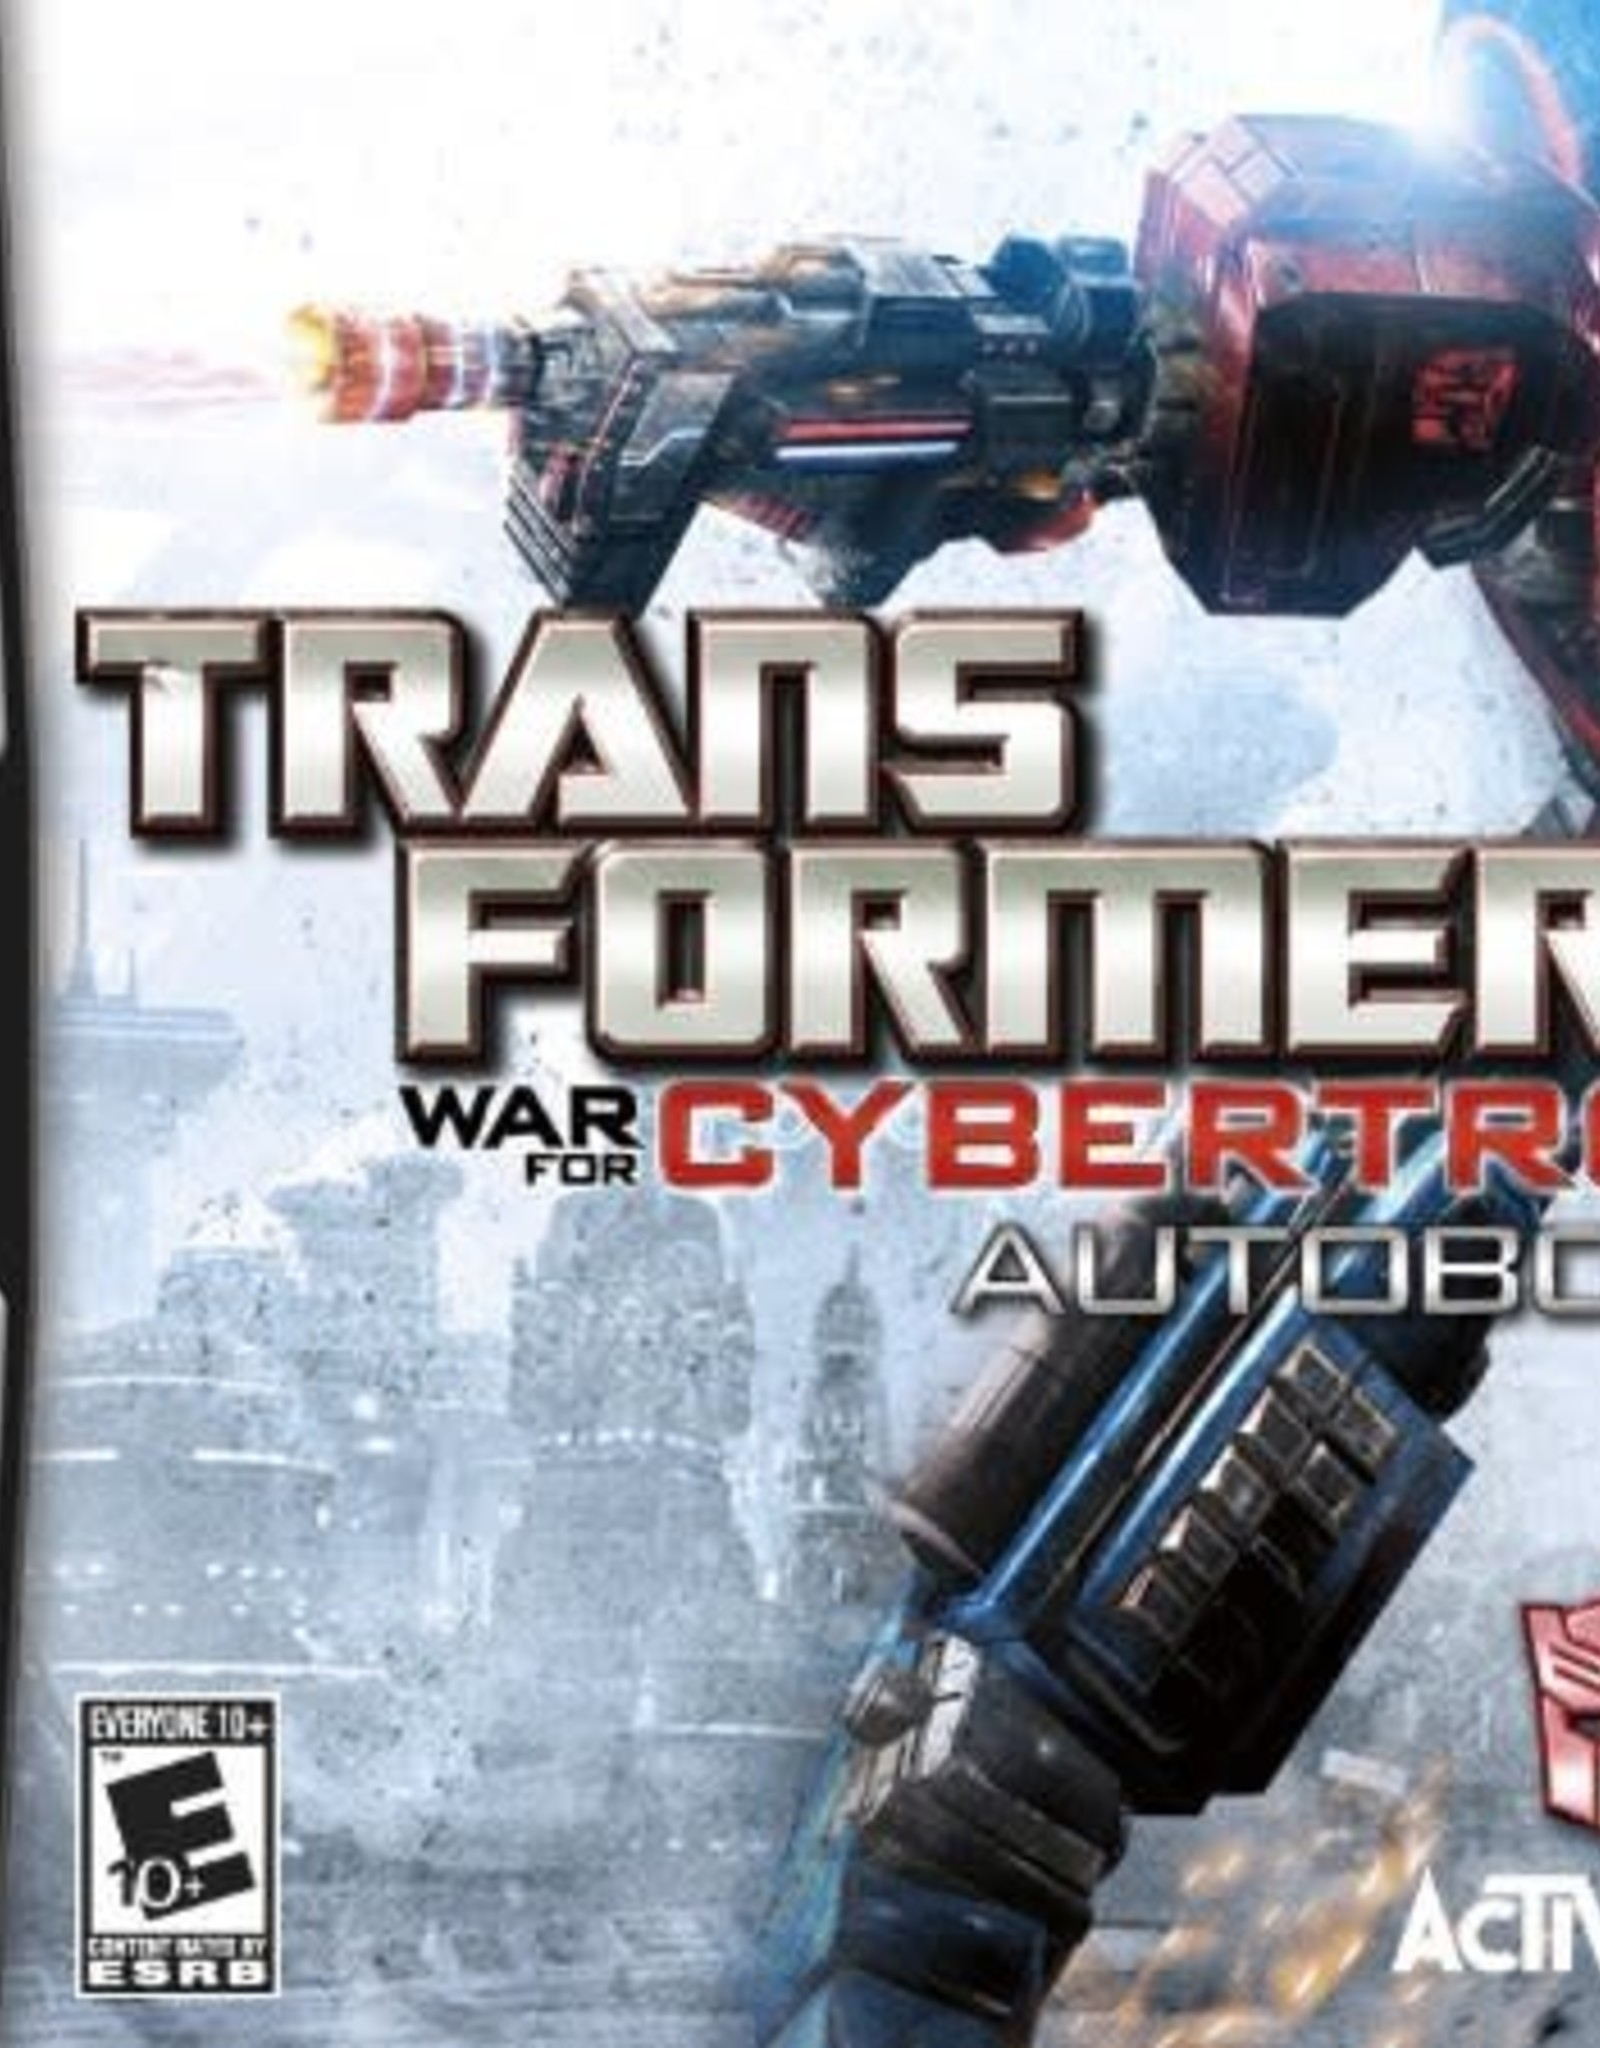 Transformers: War for Cybertron Autobots - NDS NEW